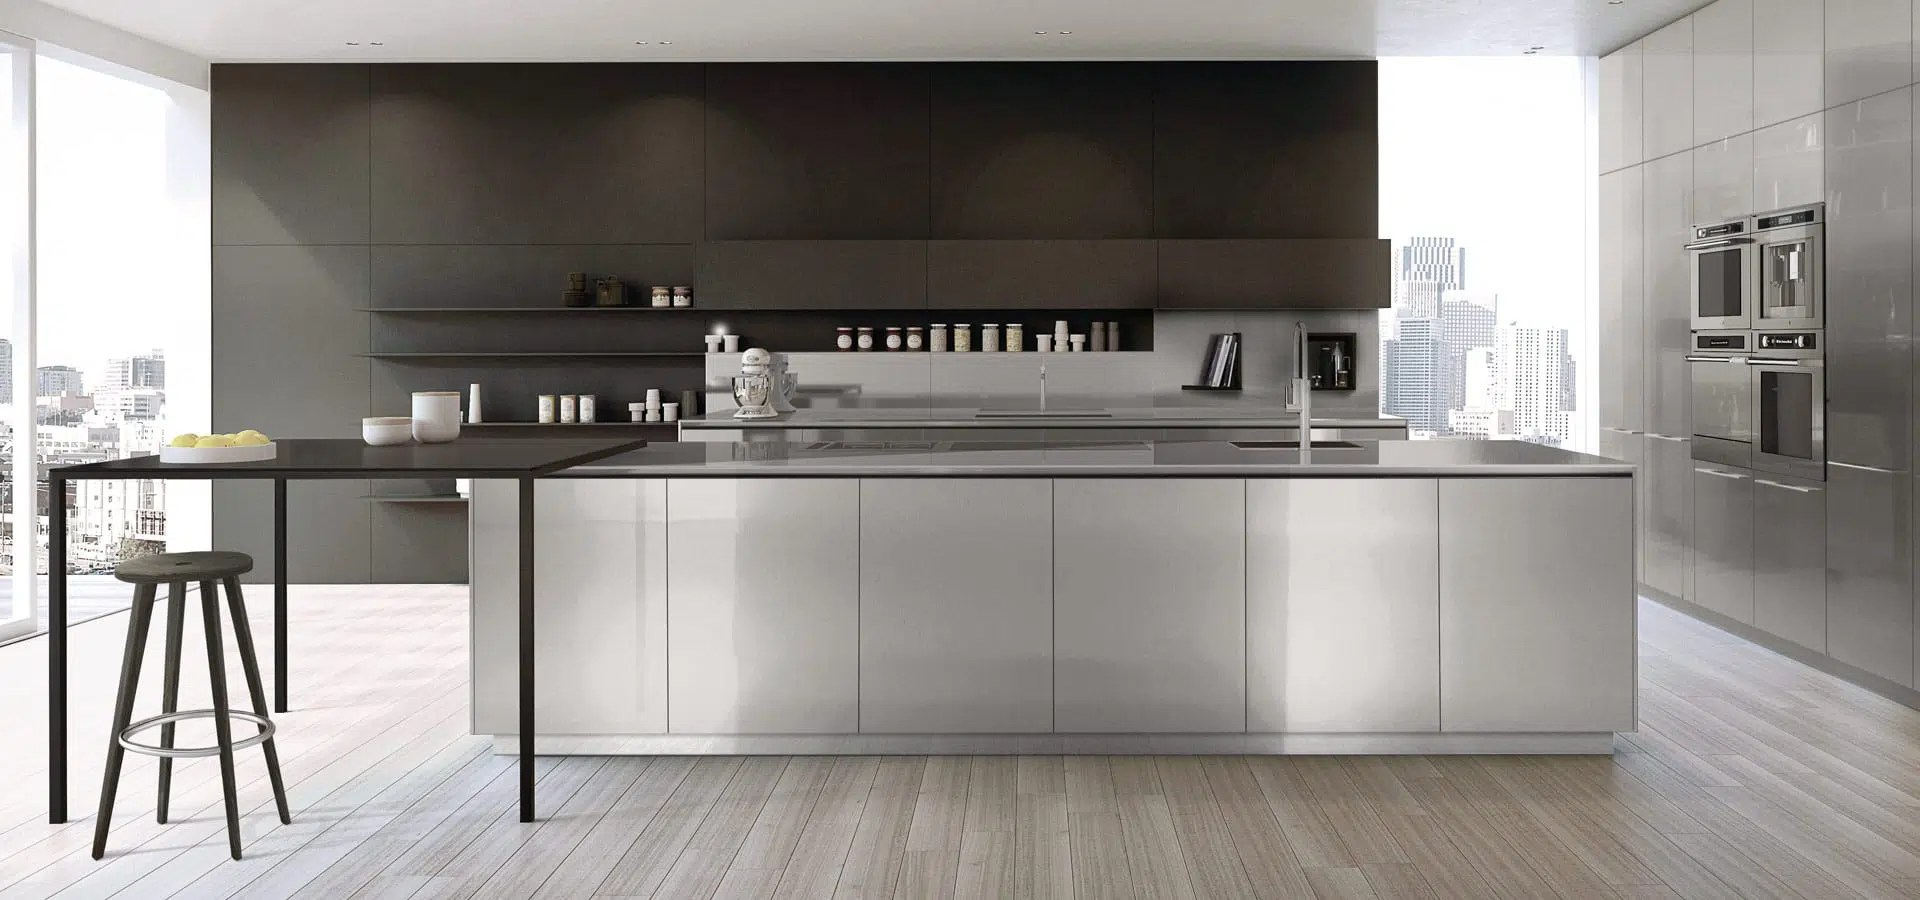 Modern european kitchens, contemporary kitchen design